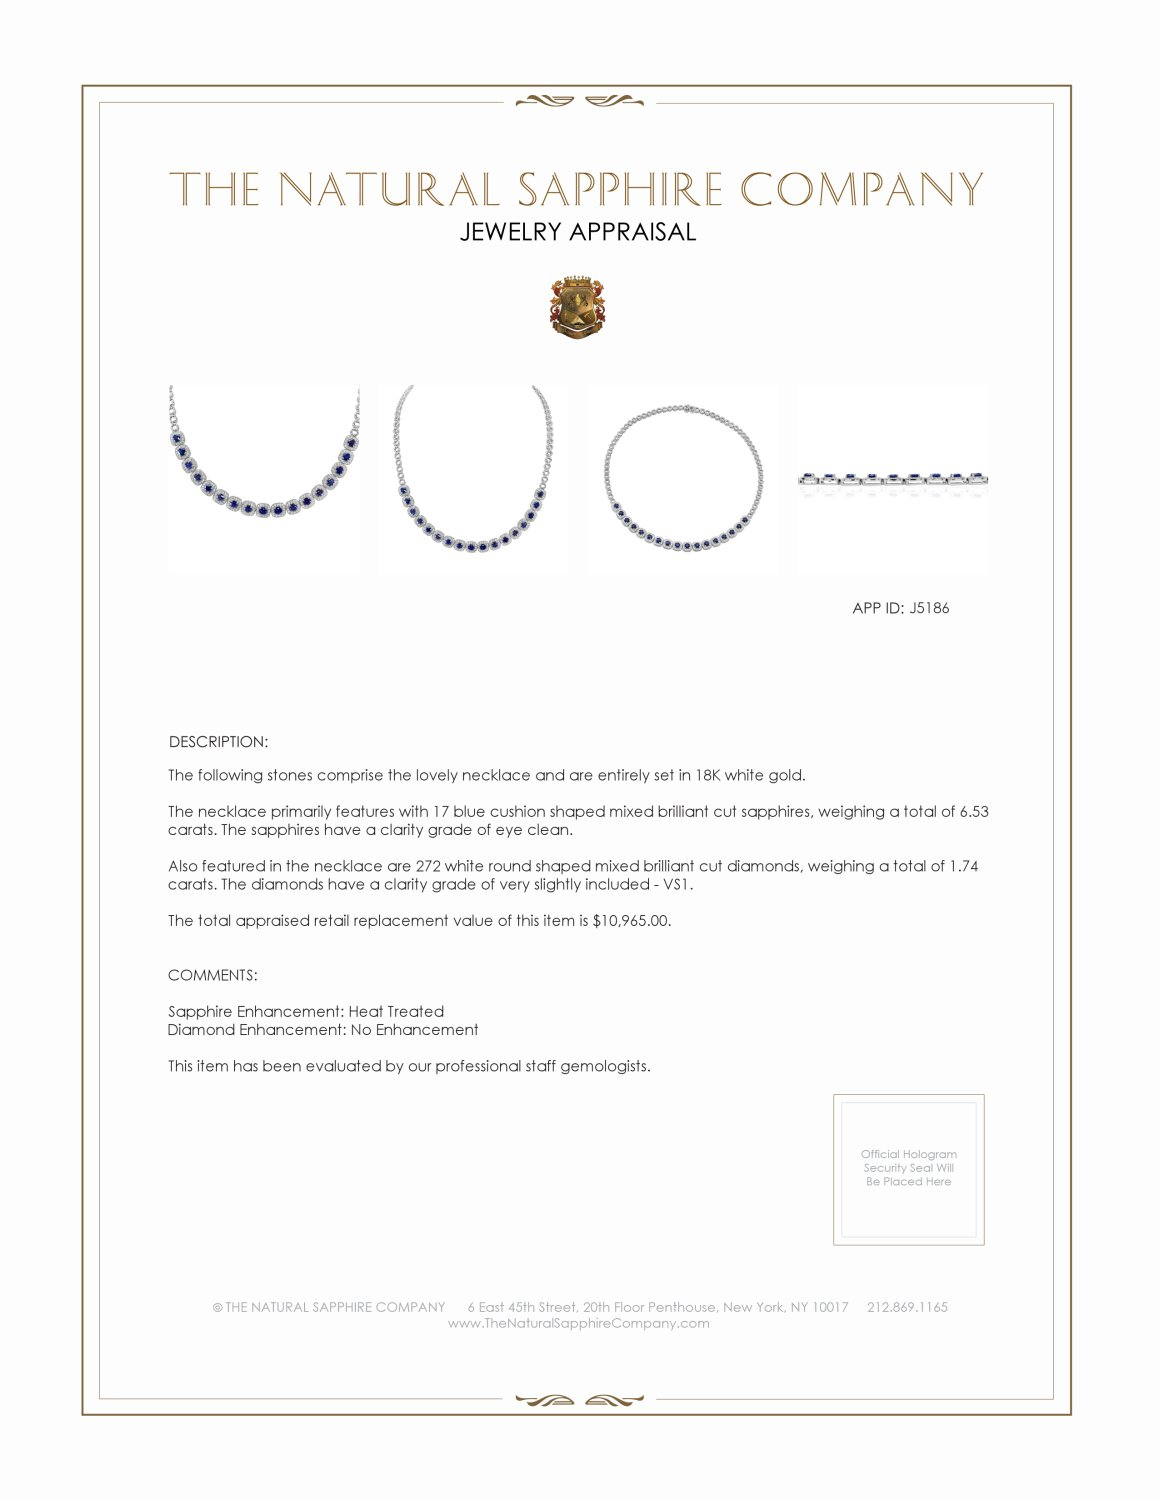 6.53ct Blue Sapphire Necklace Certification 2